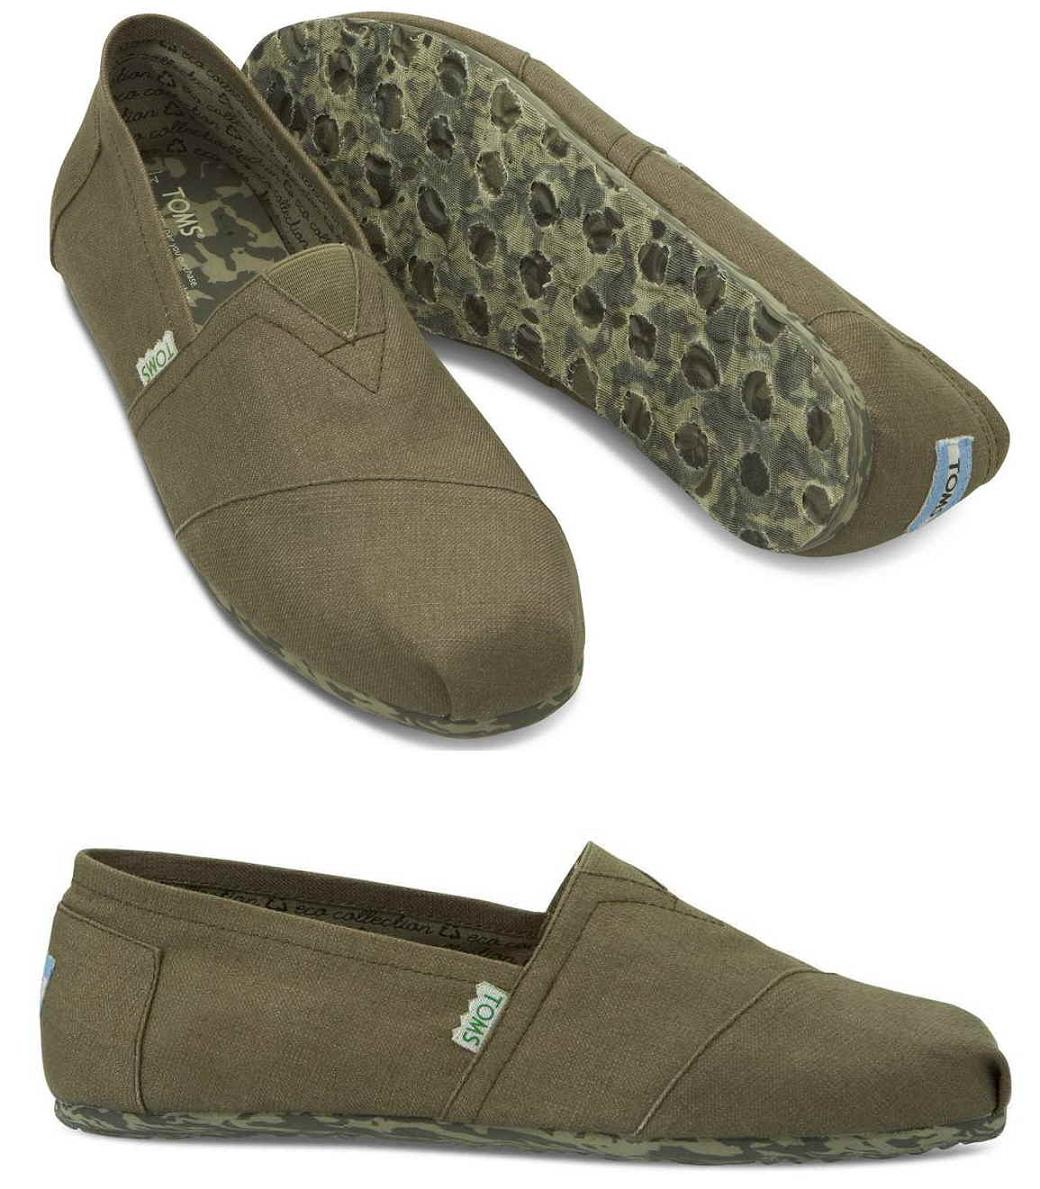 Toms Earthwise Classic Light Grey Recyclable férfi cipő